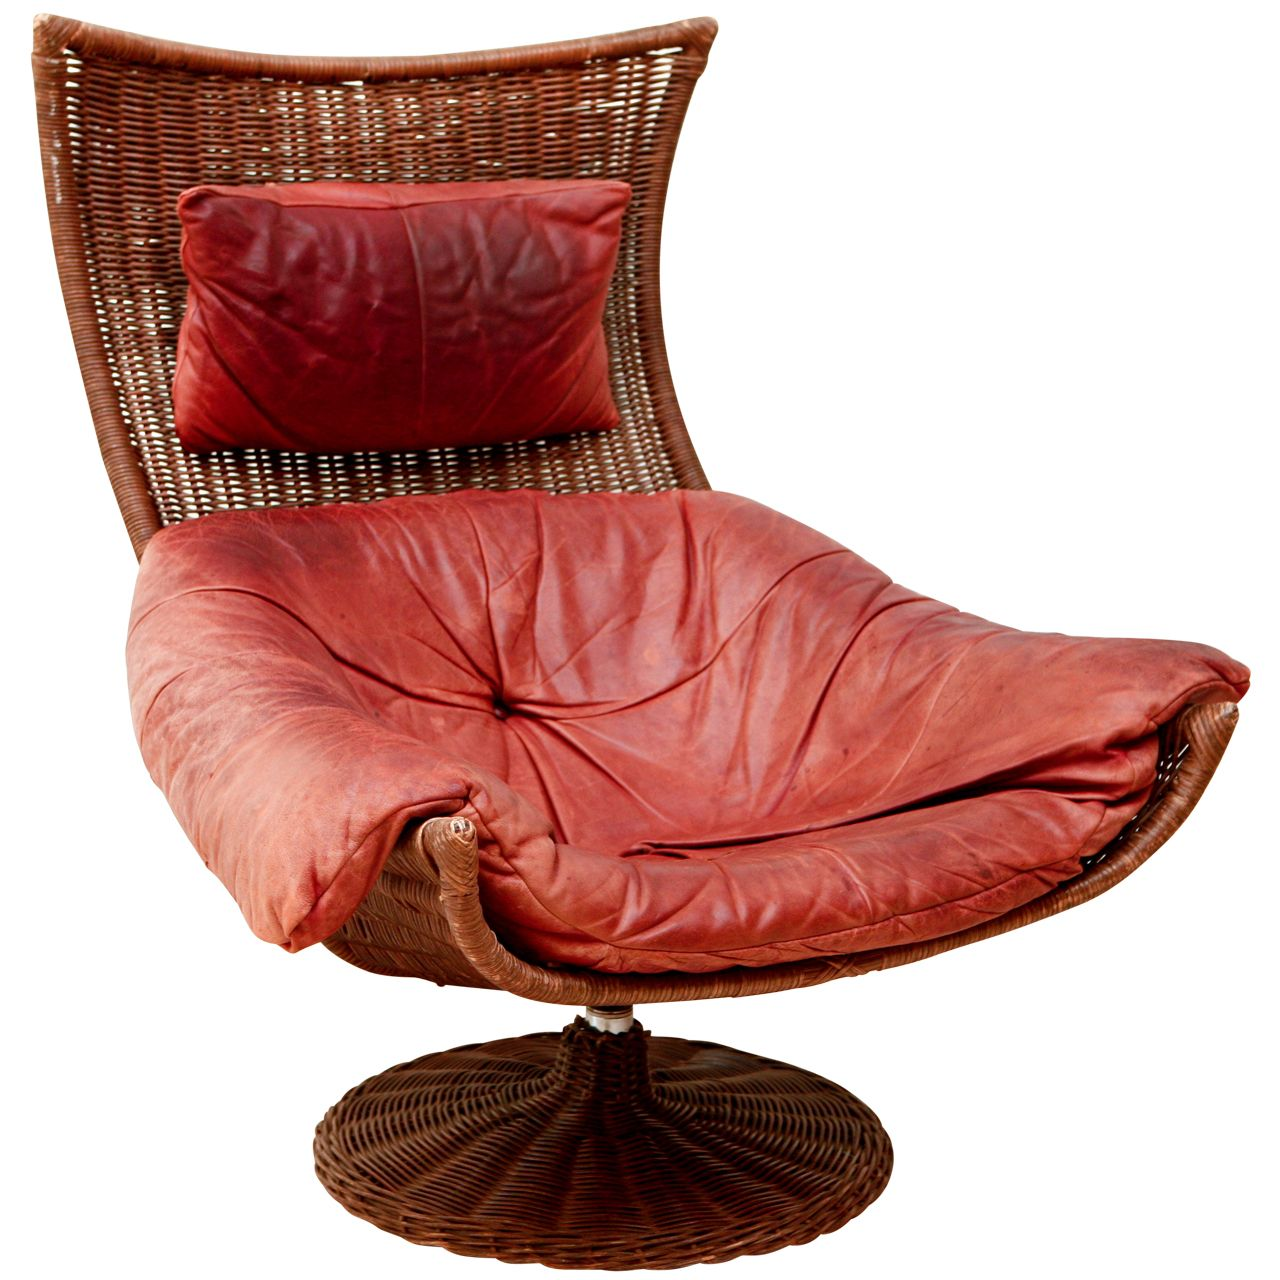 Gerard van den Berg Leather & Rattan Swivel Lounge Chair | From a unique collection of antique and modern swivel chairs at http://www.1stdibs.com/furniture/seating/swivel-chairs/